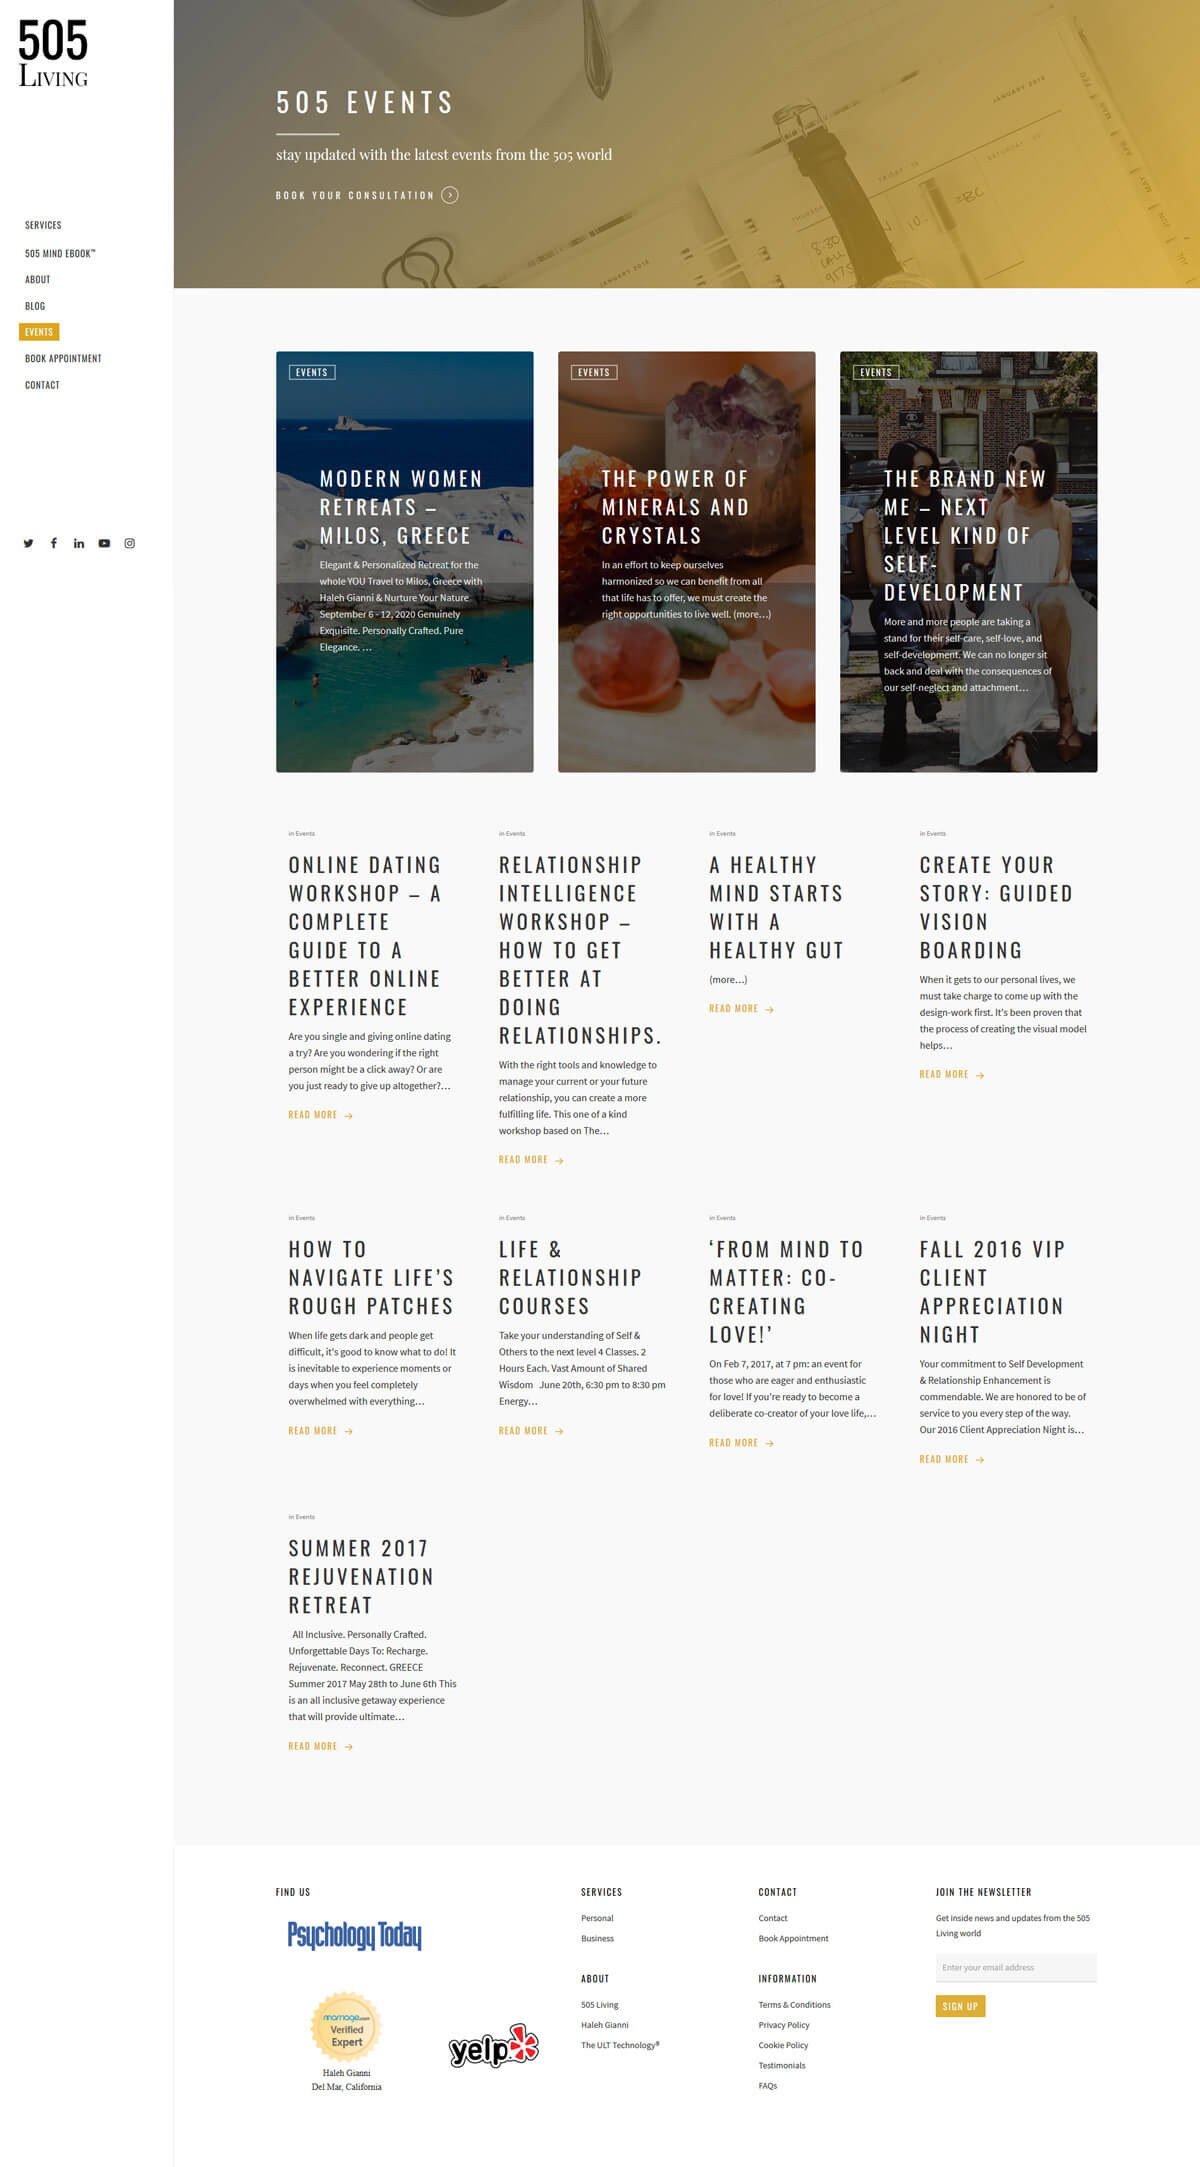 505 Living - Case Study - developed by Digital Artifacts Creative